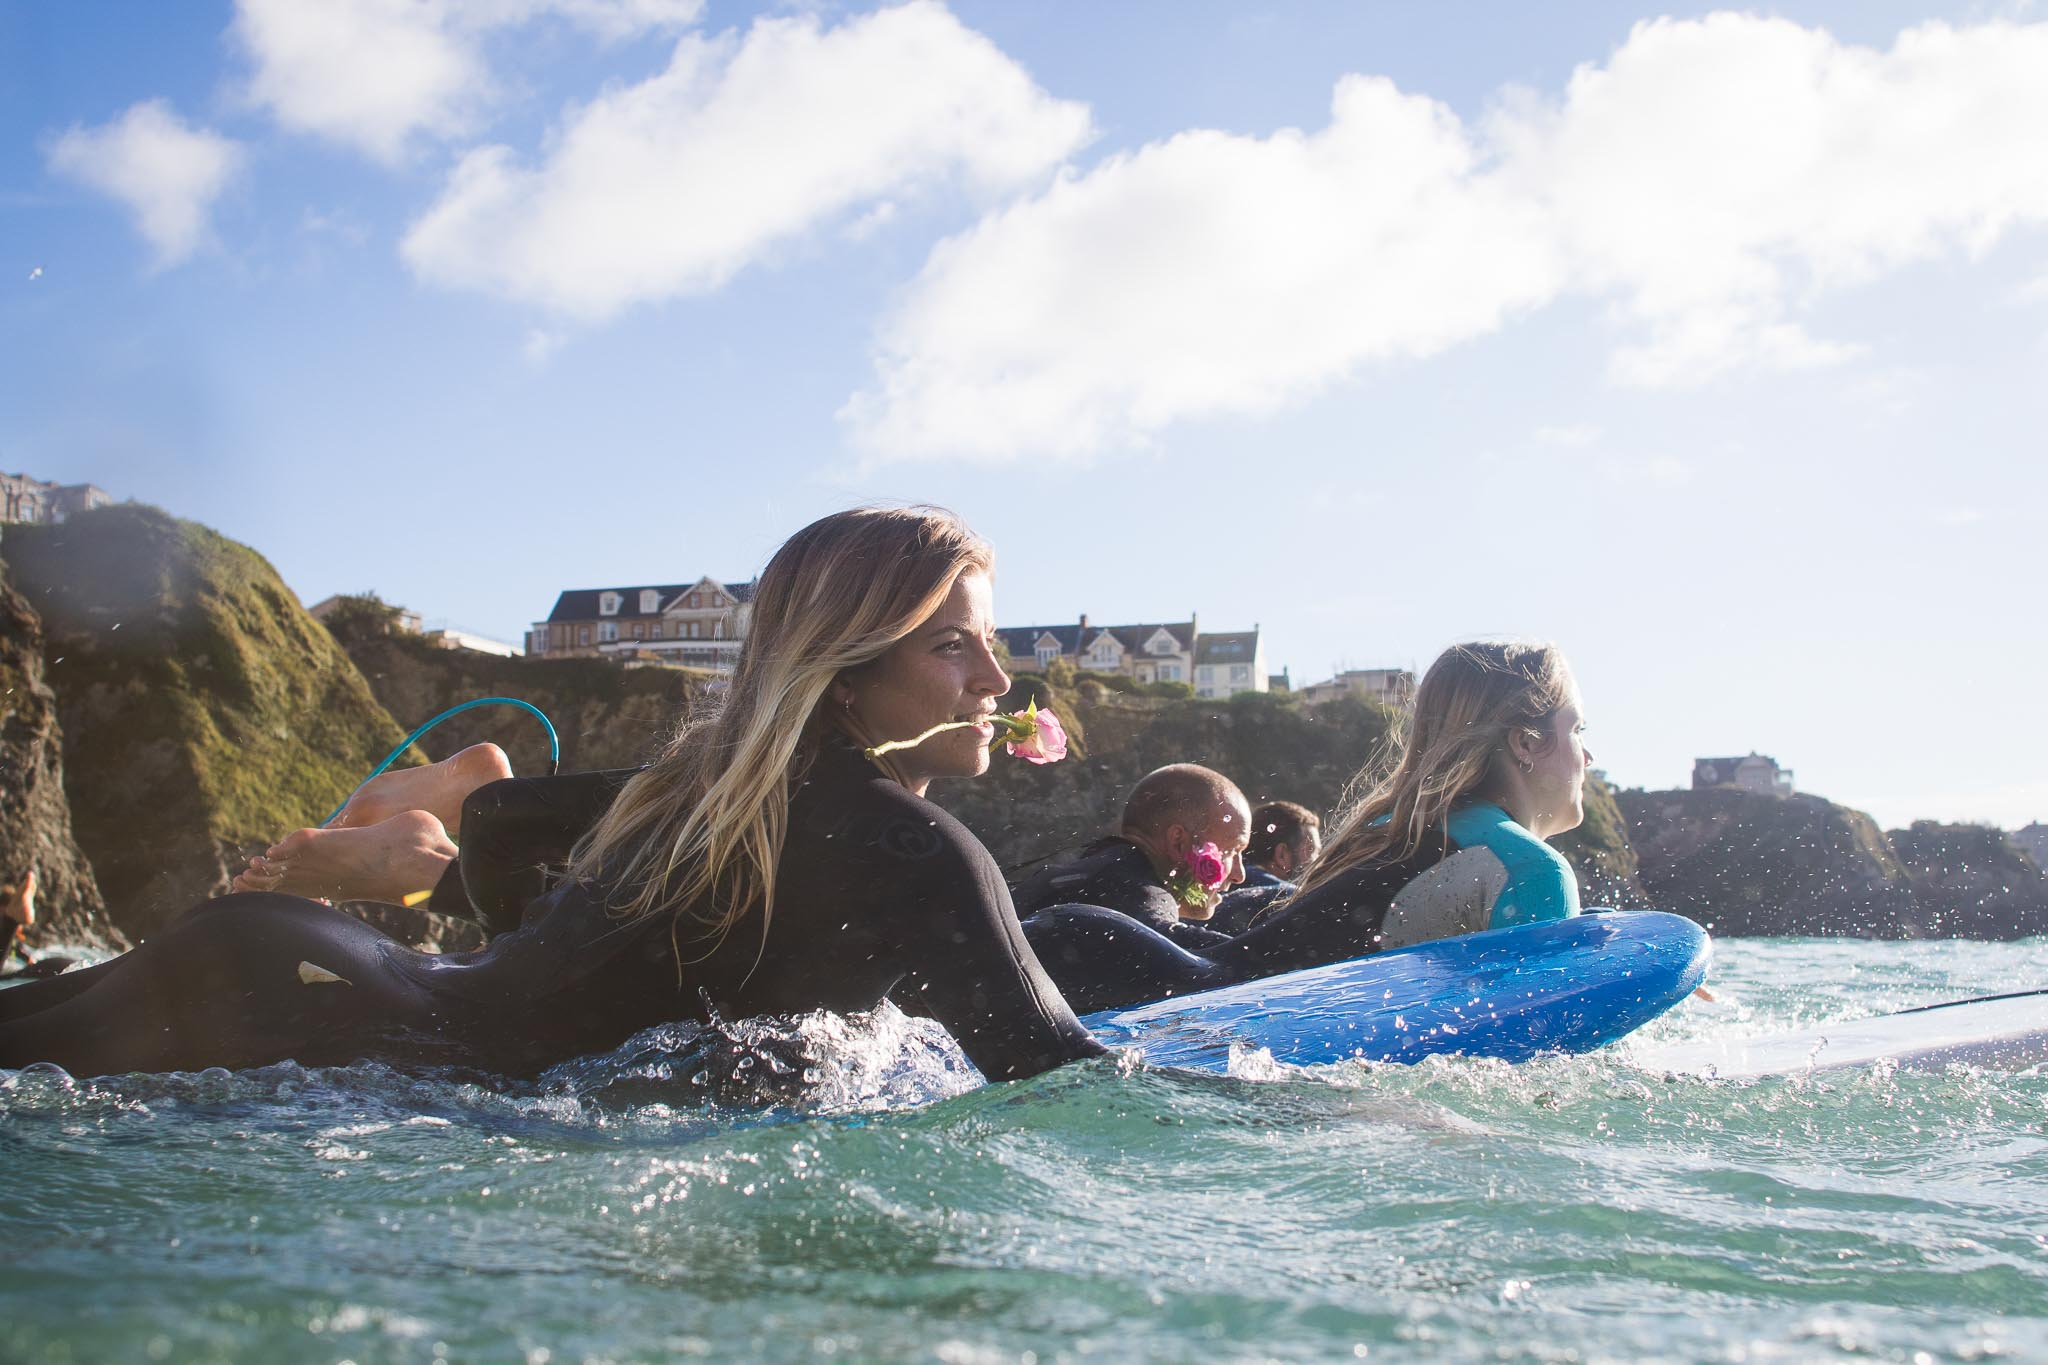 Jack O'Neill Paddle Out